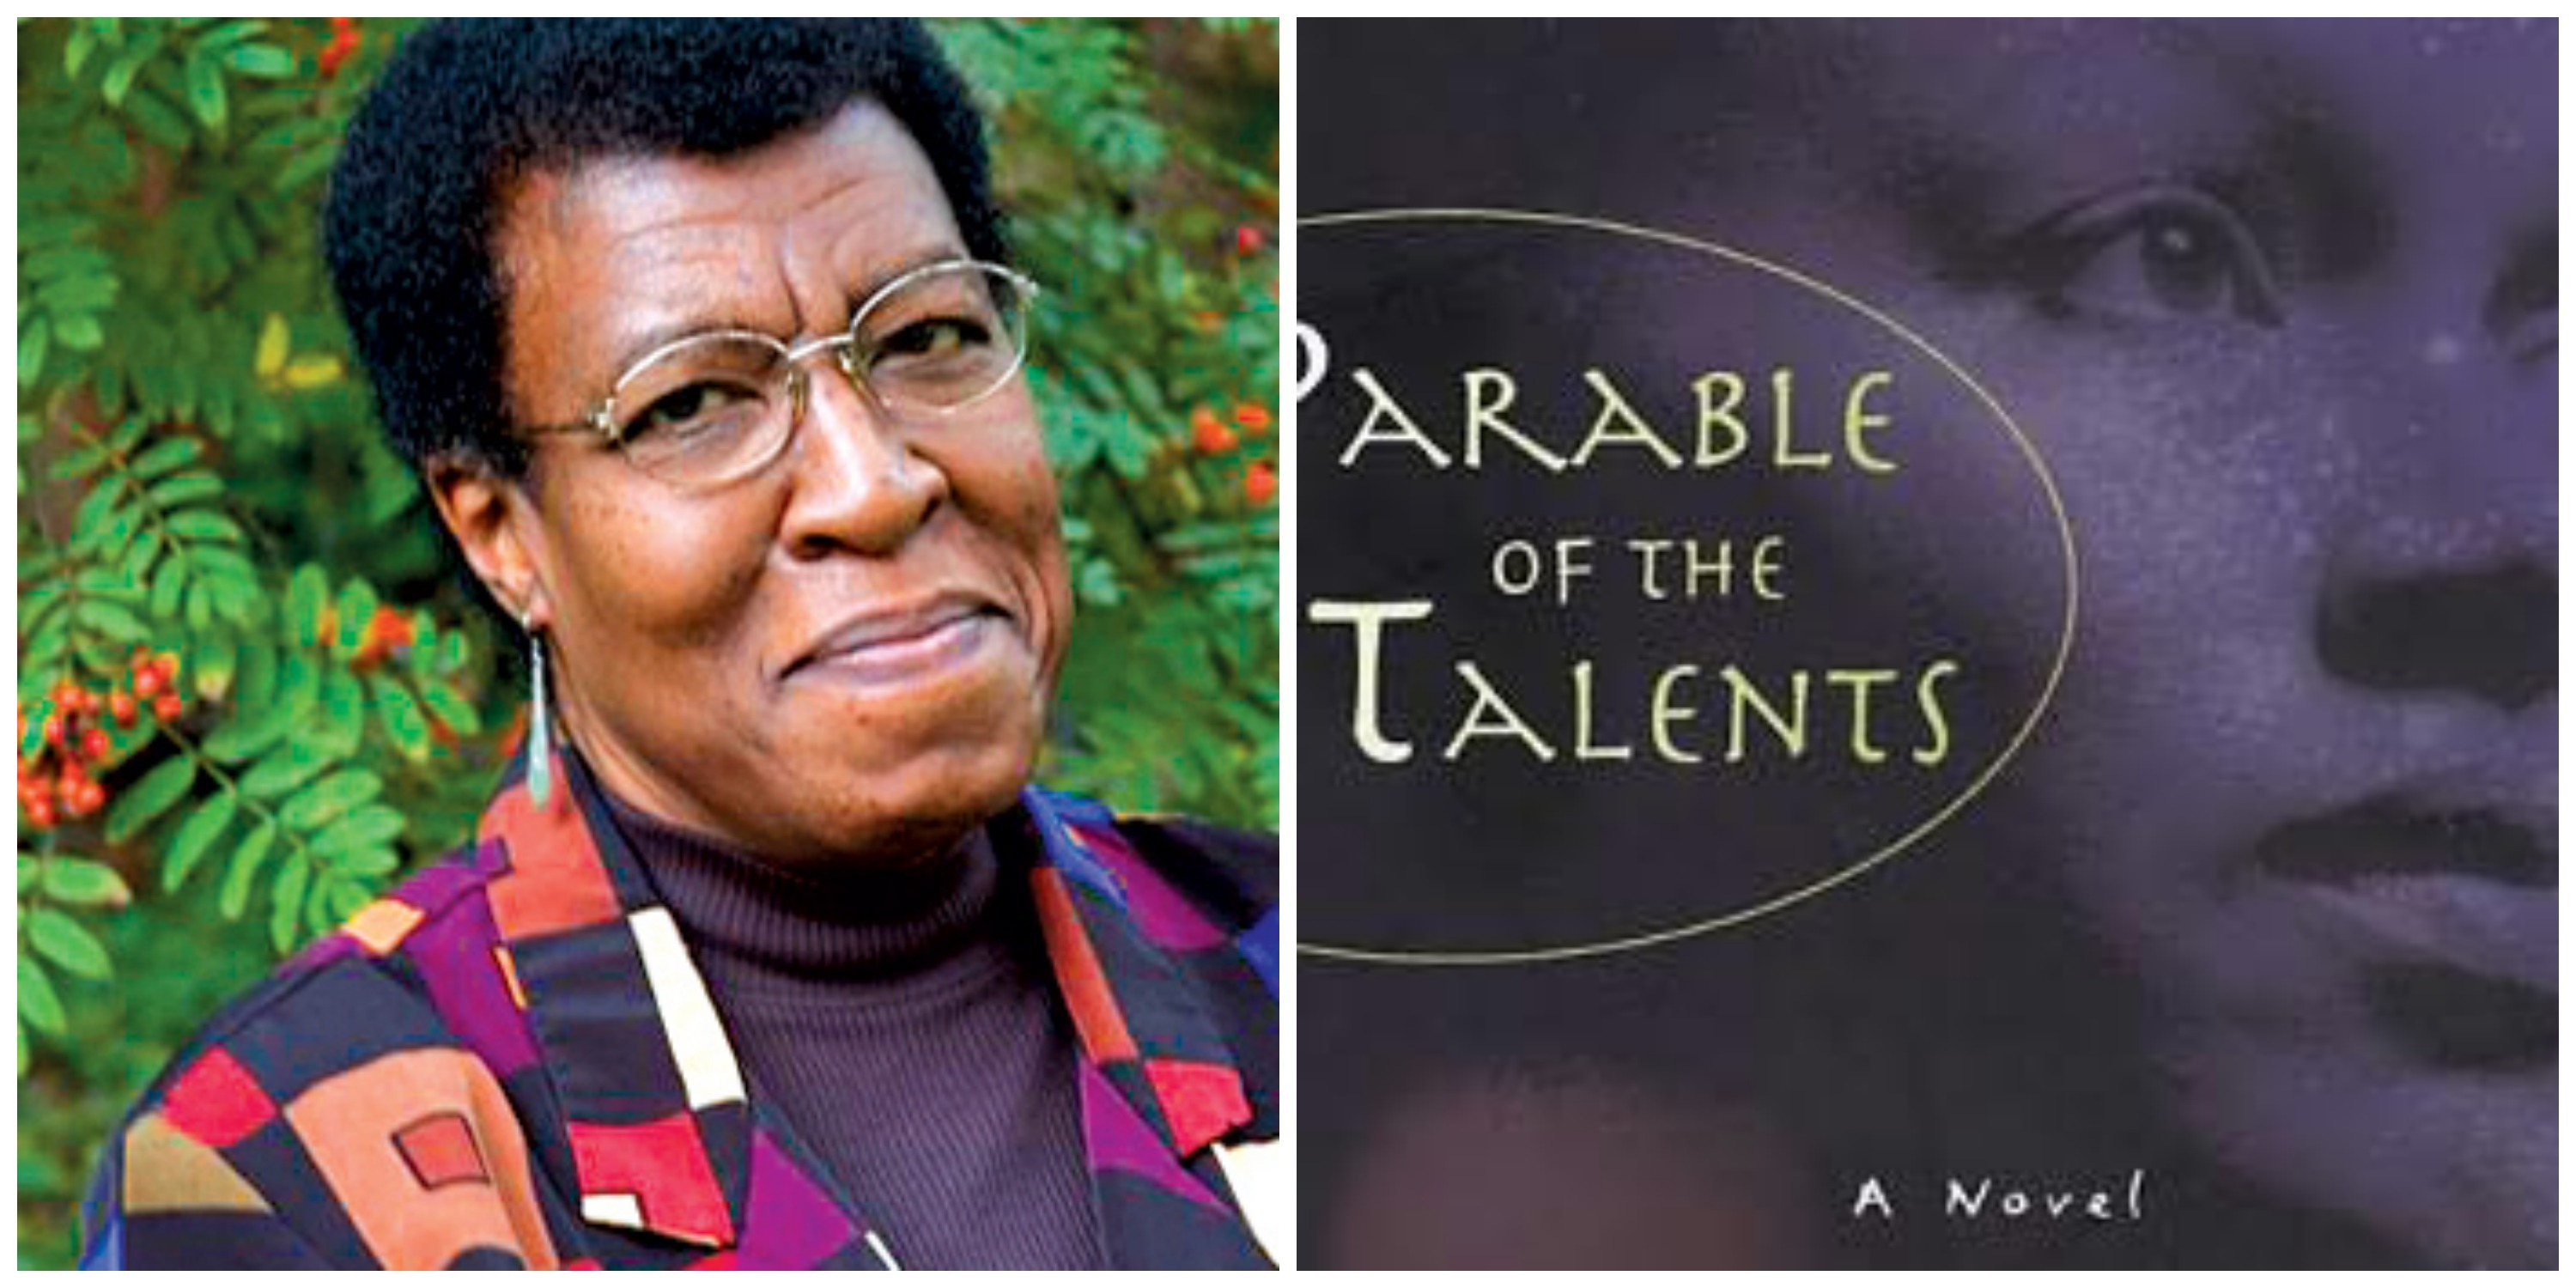 kindred critical essay Greta gage 12/17/15 gwss 1003w kindred critical essay kindred, a novel by octavia e butler, tells the story of dana a black woman living in 1976 who experiences.